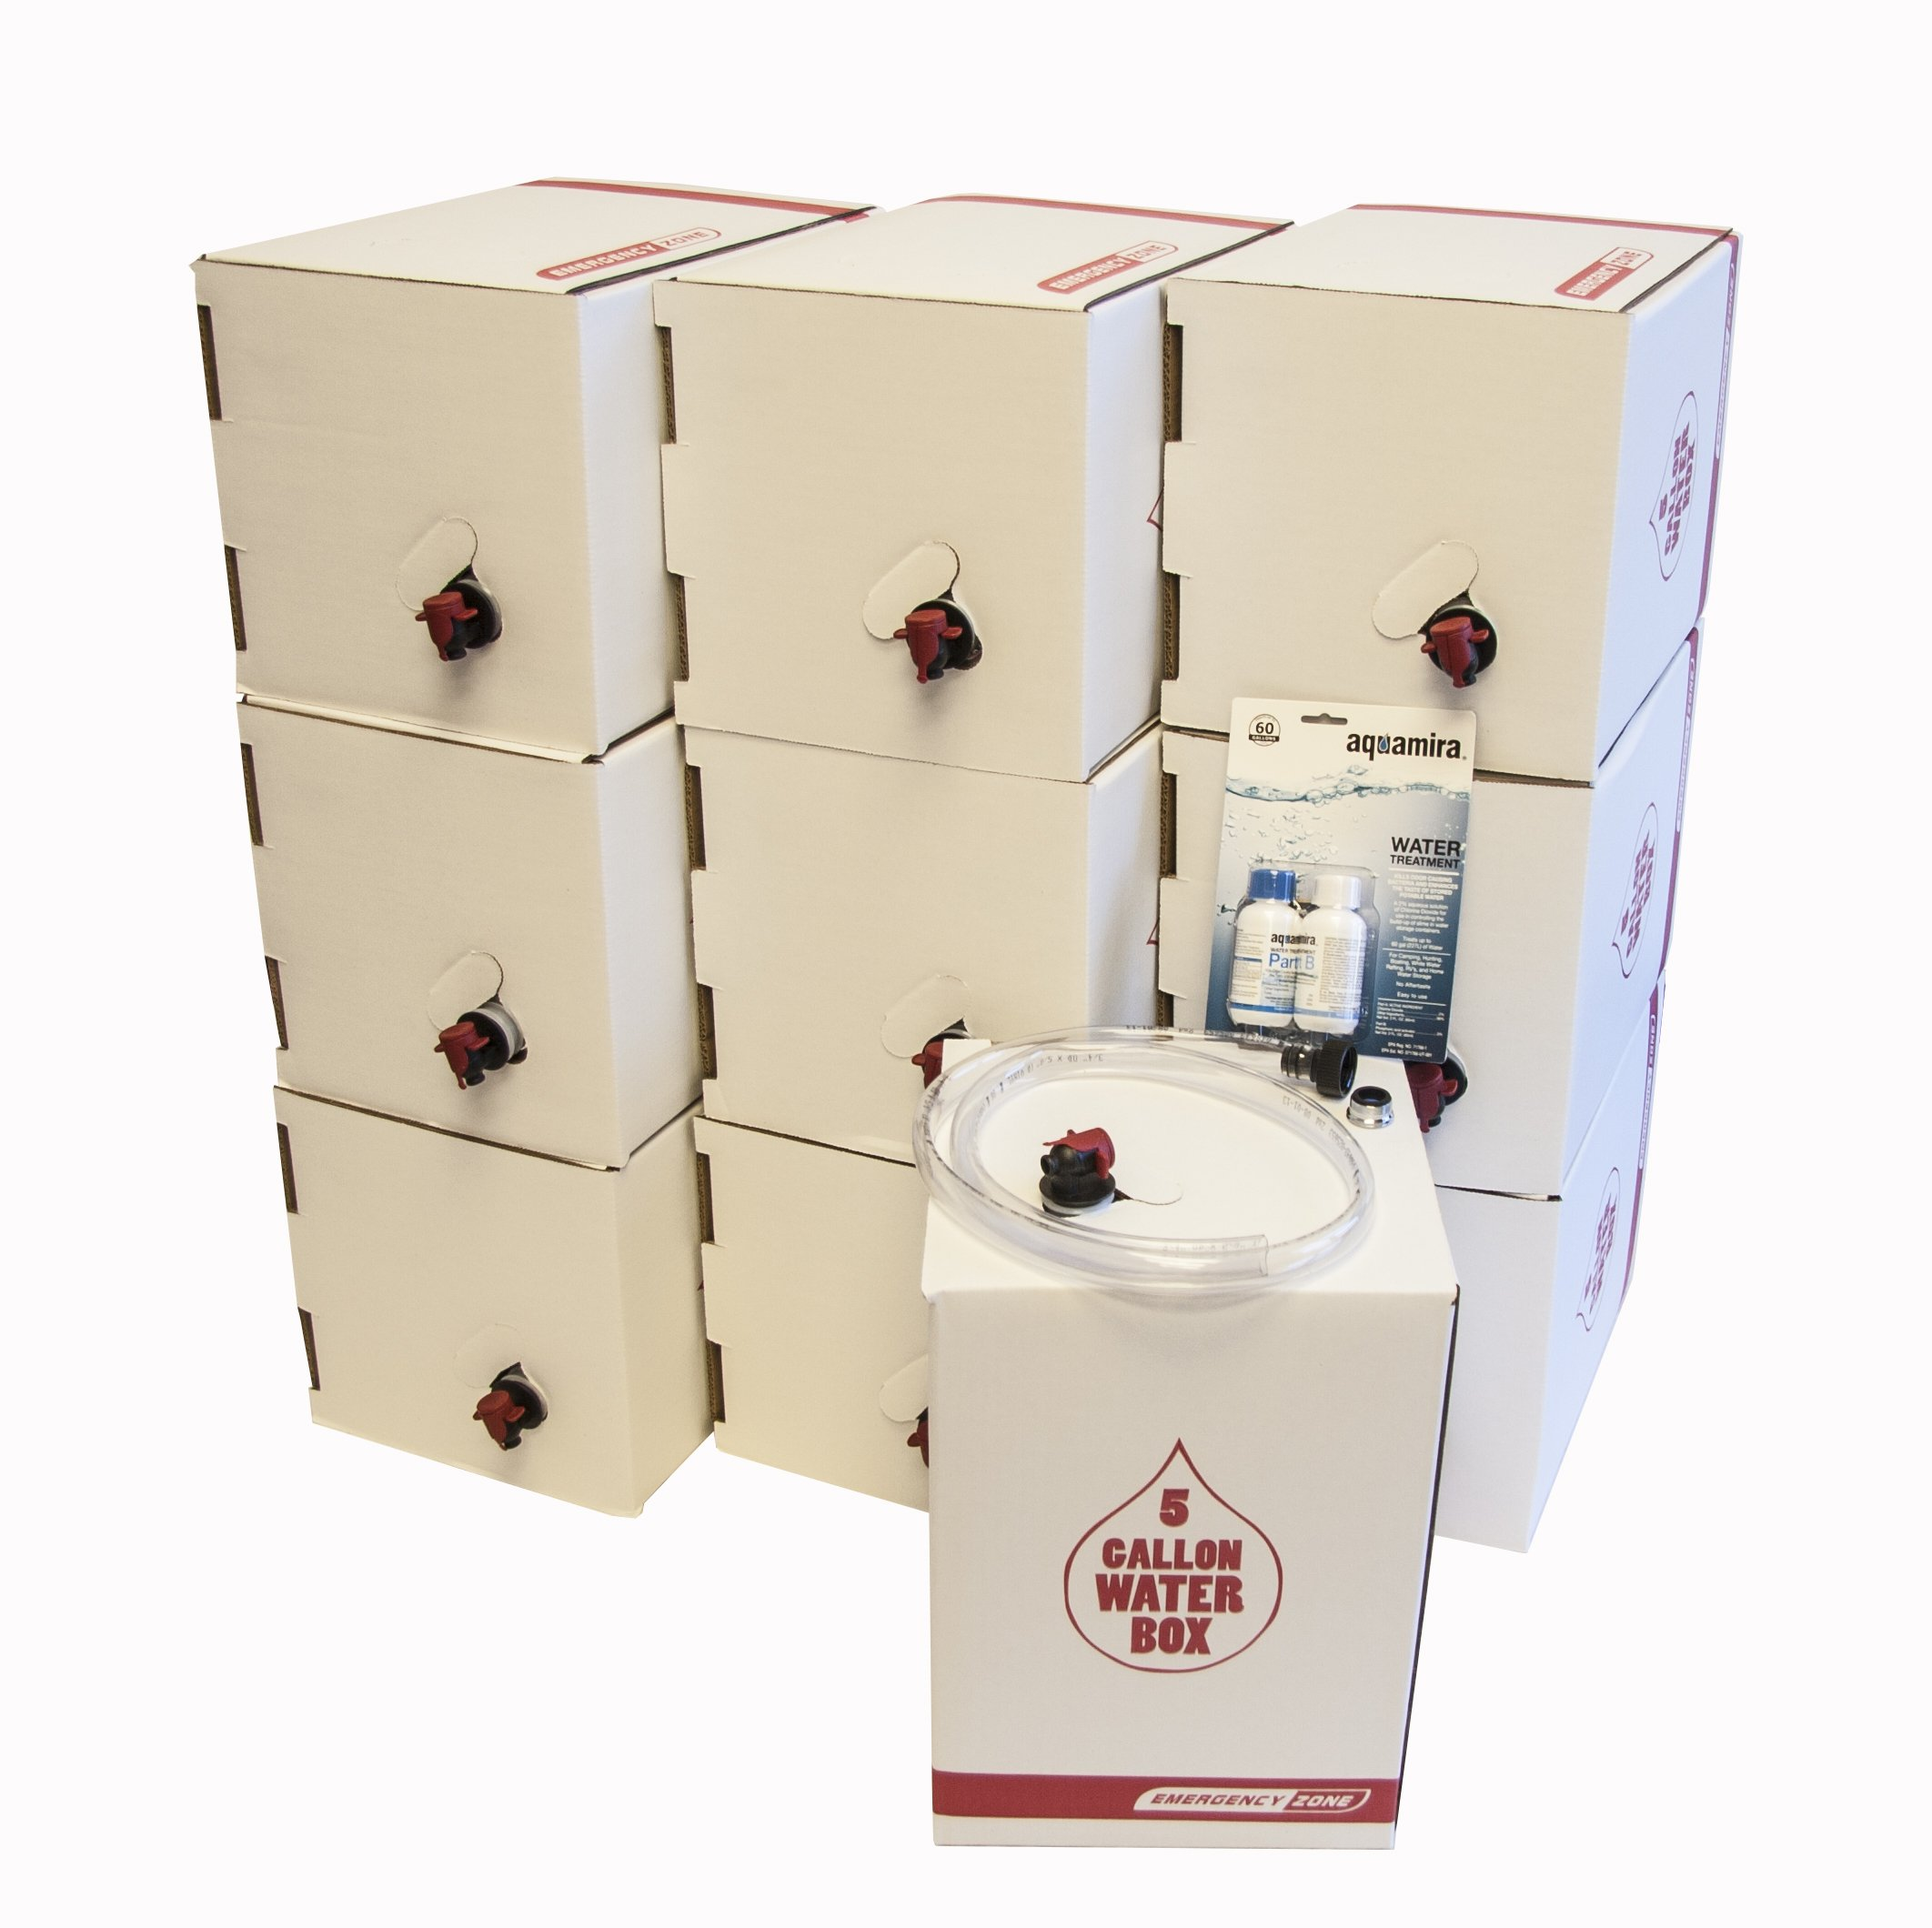 Long Term Water Storage System, BPA Free Water Bags, 5 Year Shelf Life, 50 Gallon Set by Emergency Zone